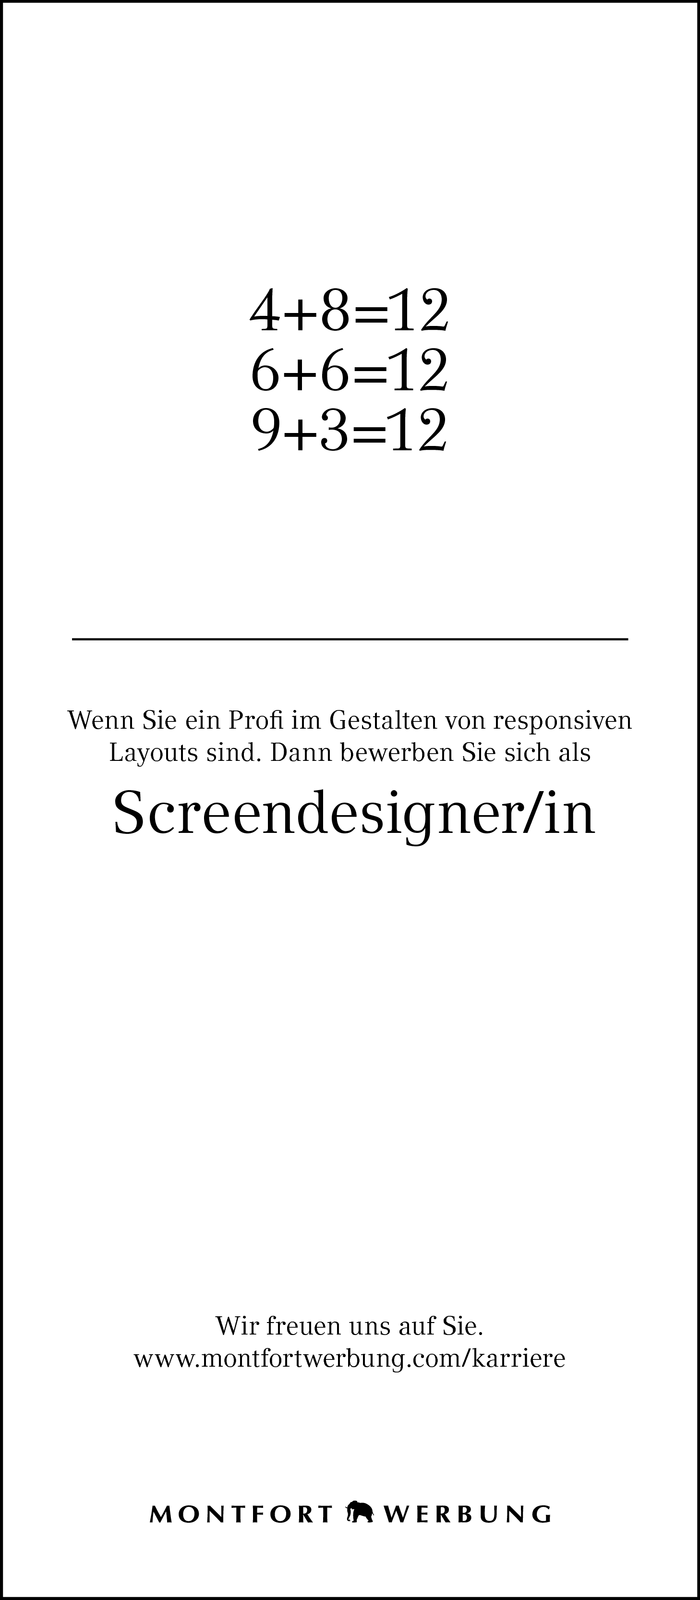 Screendesigner/in